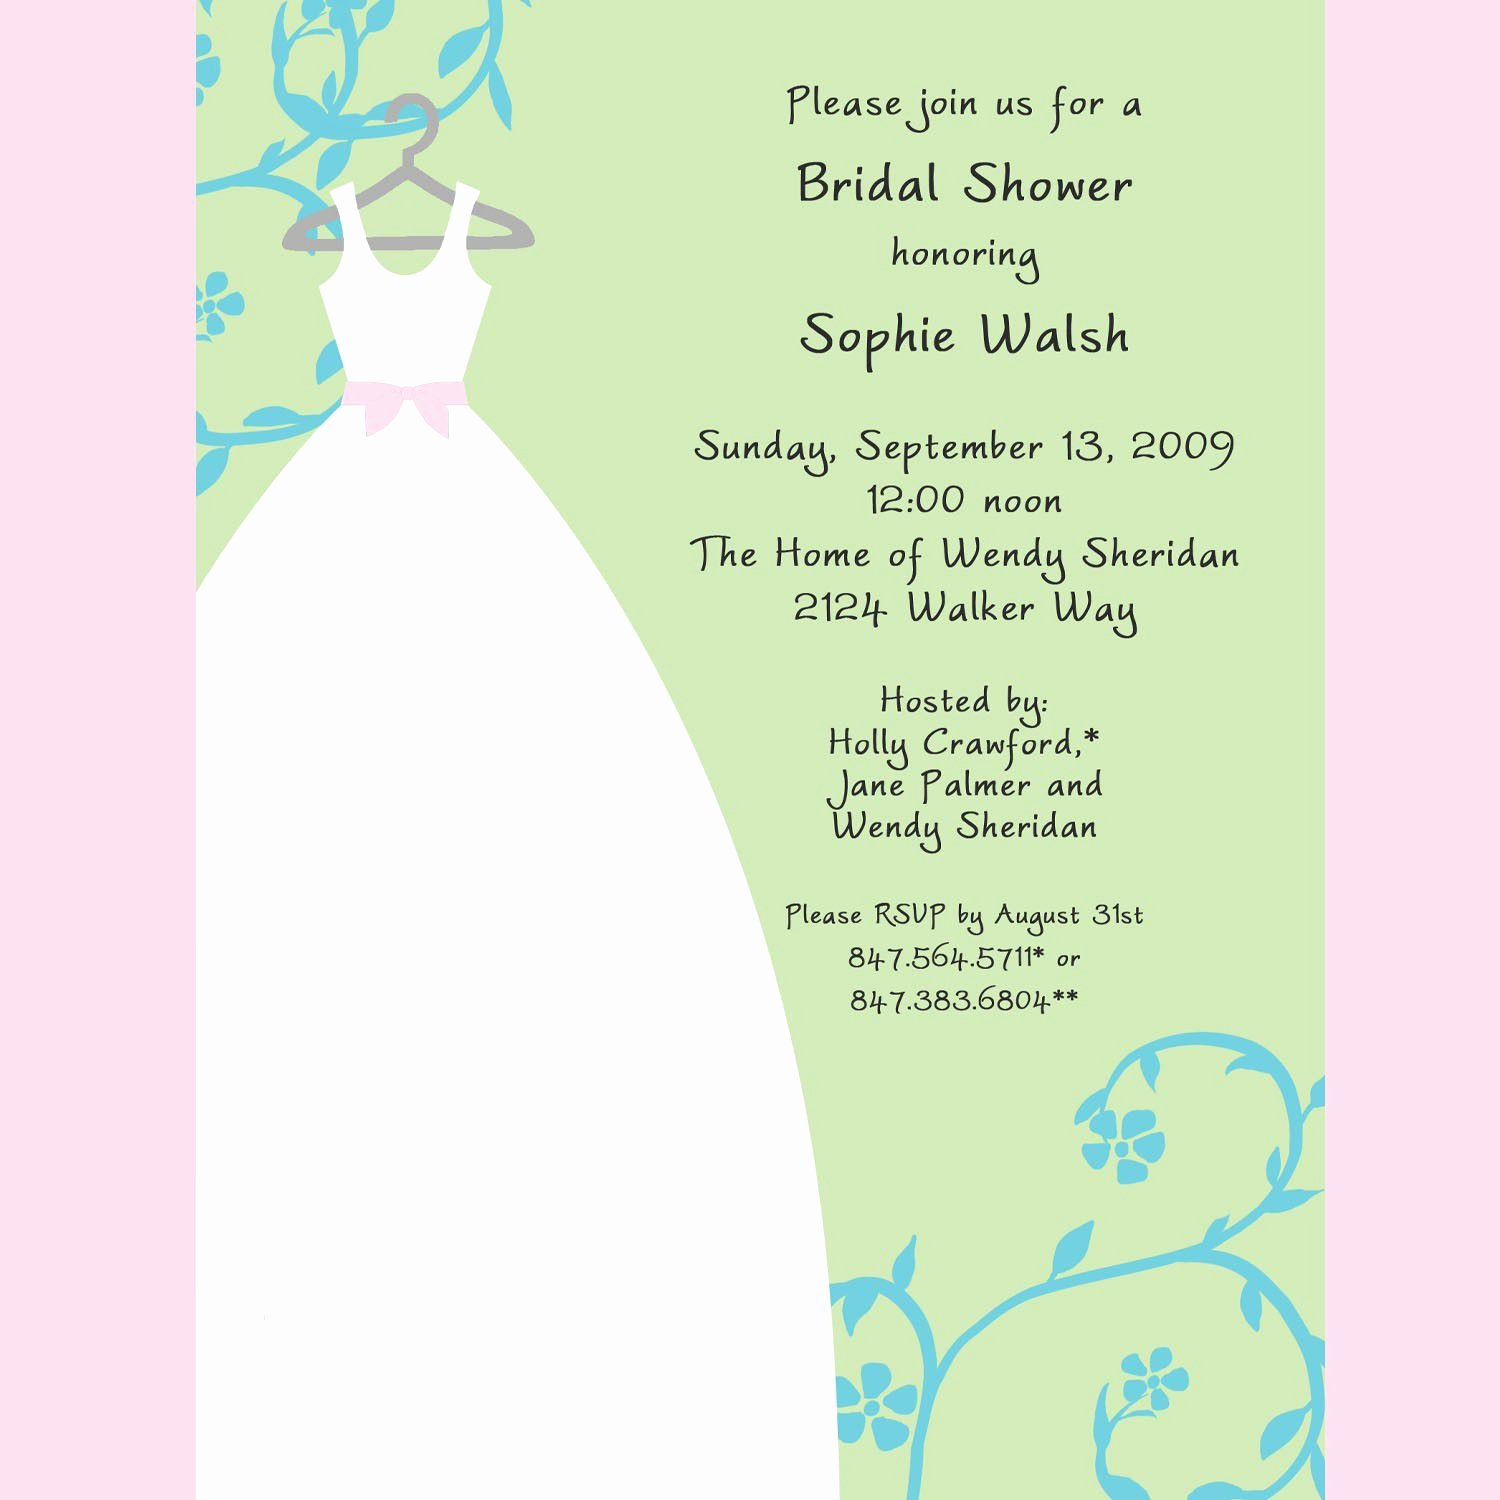 Bridal Shower Invitation Template Beautiful Bridal Shower Bridal Shower Invitations Samples Card